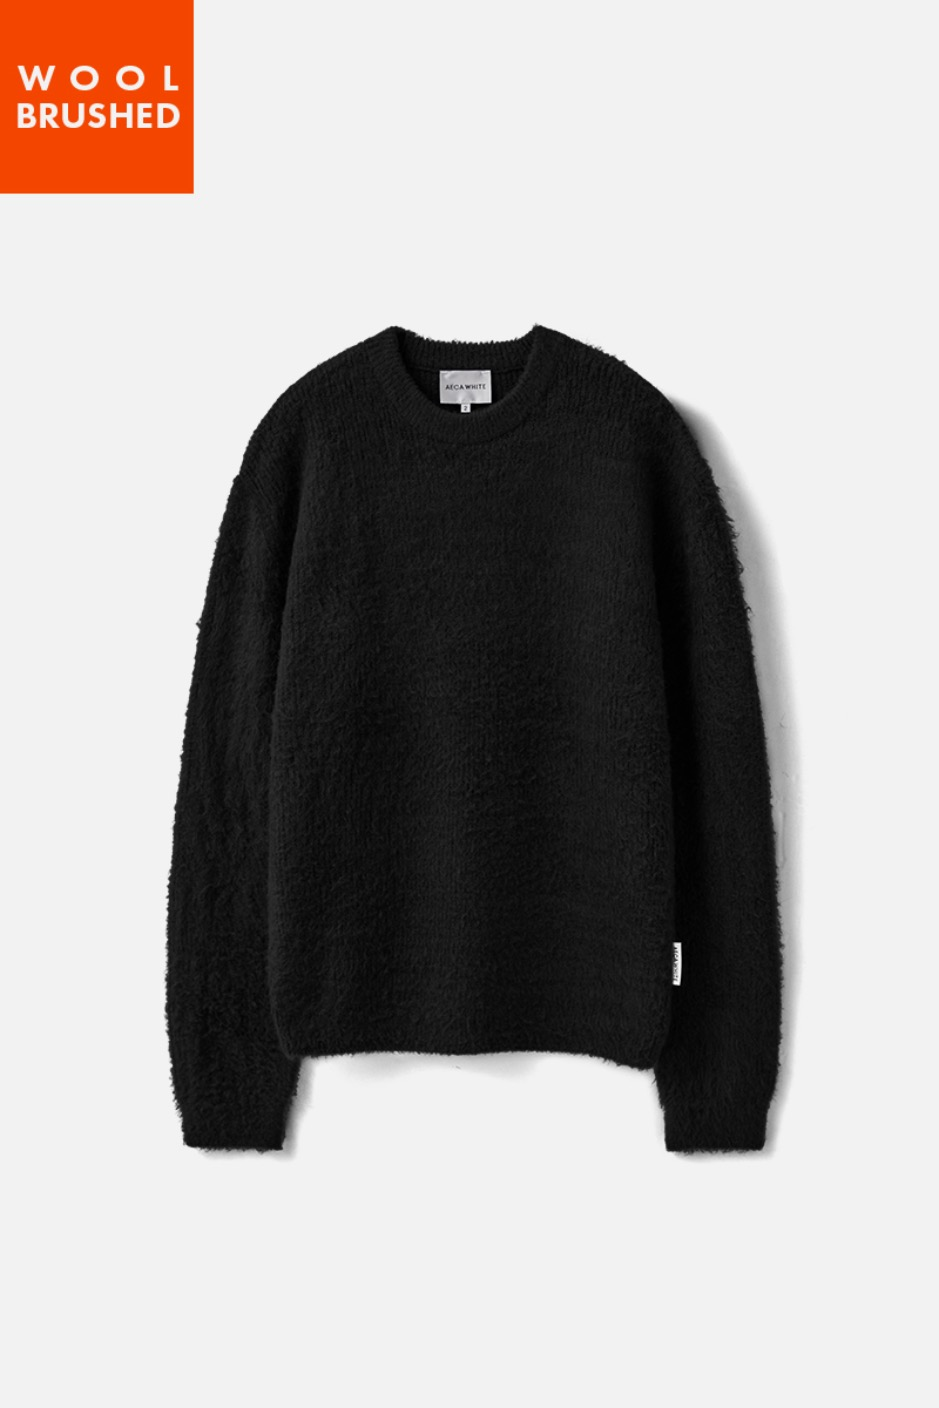 OVERSIZE WOOL BRUSHED KNIT-BLACK